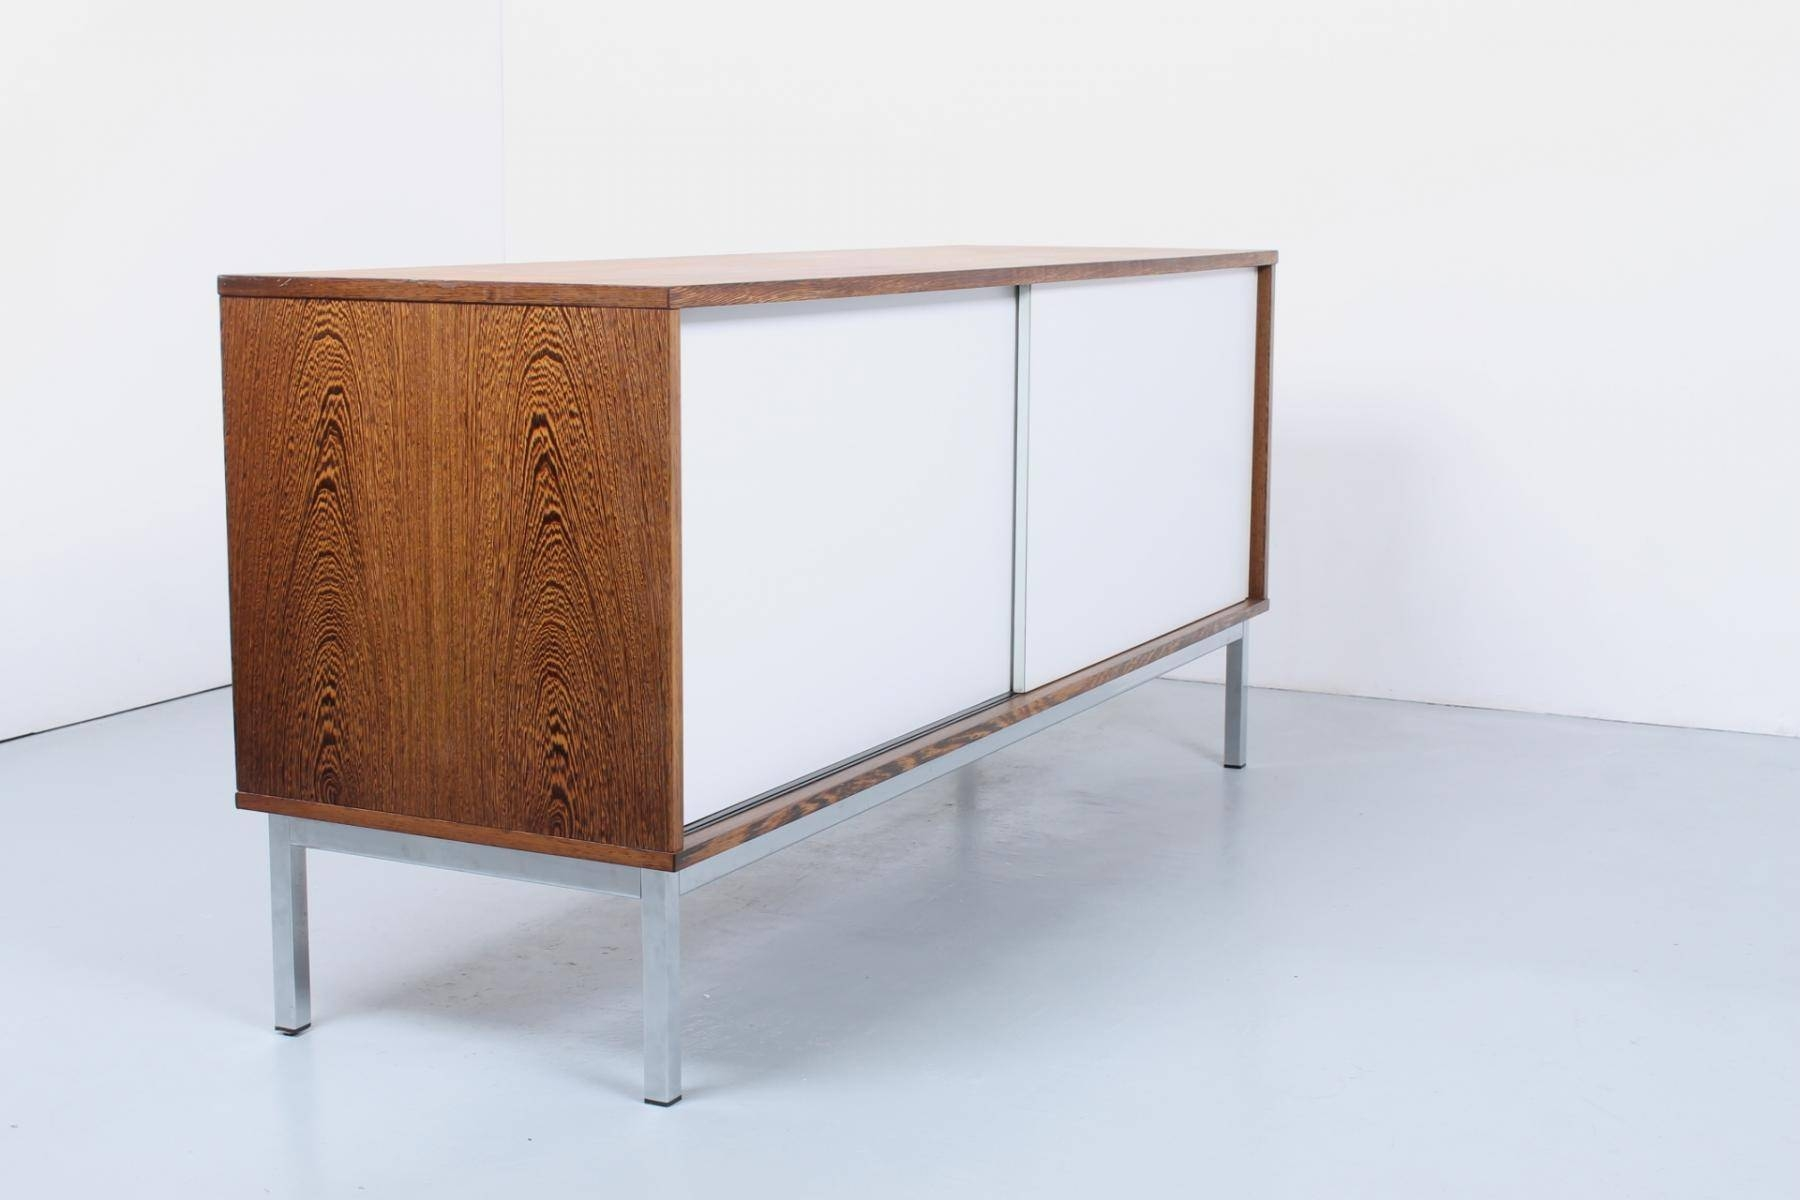 Inspiration about Vintage Kw 87 Sideboard In Wenge Veneer And White Formica Inside Latest Wenge Sideboards (#6 of 15)